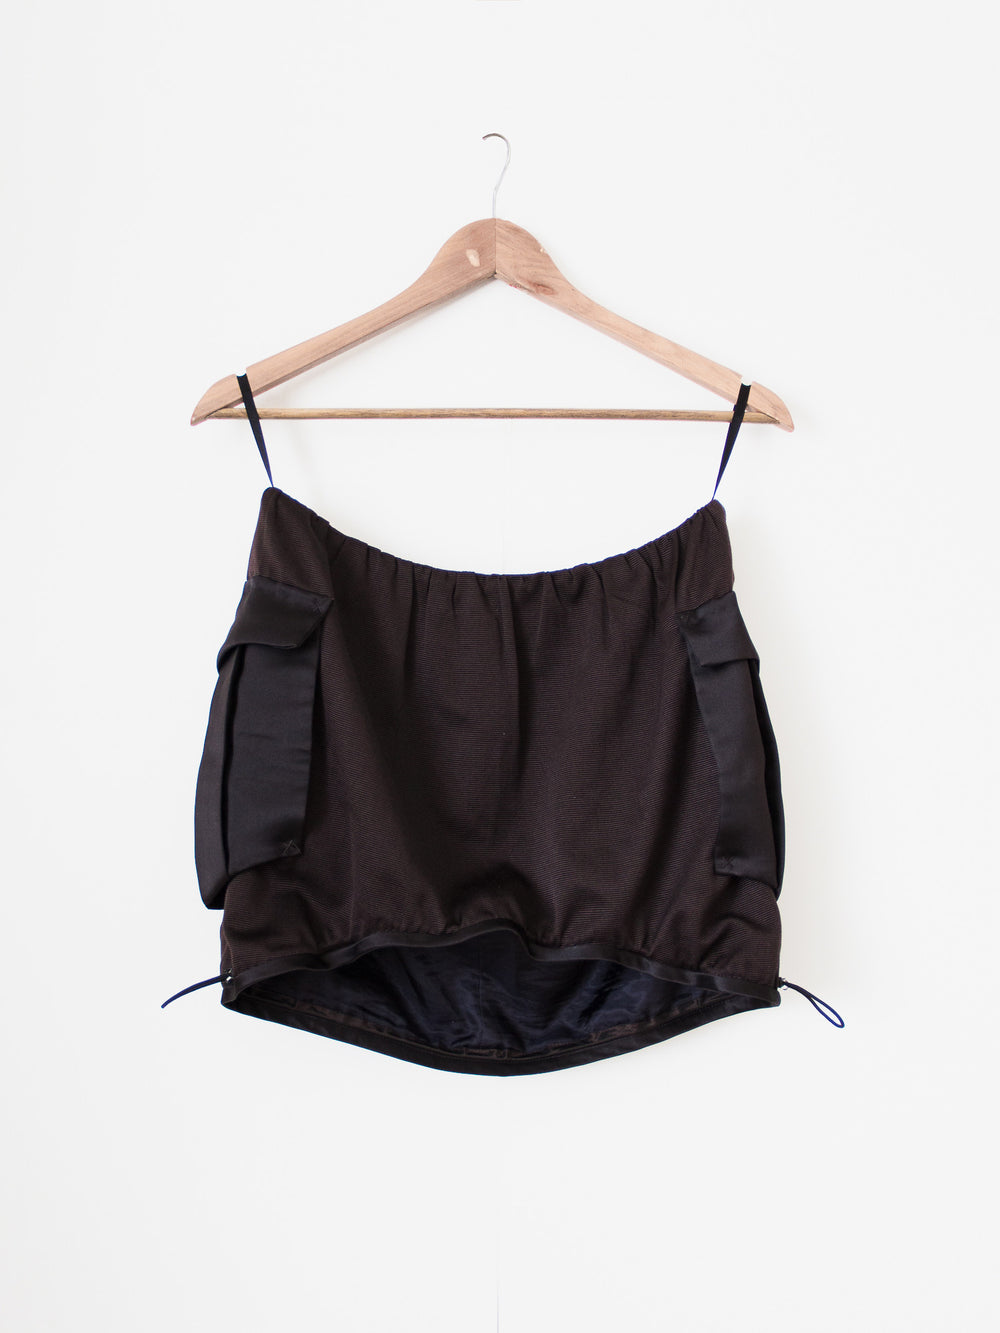 Undercover AW07 Cargo Bubble Skirt